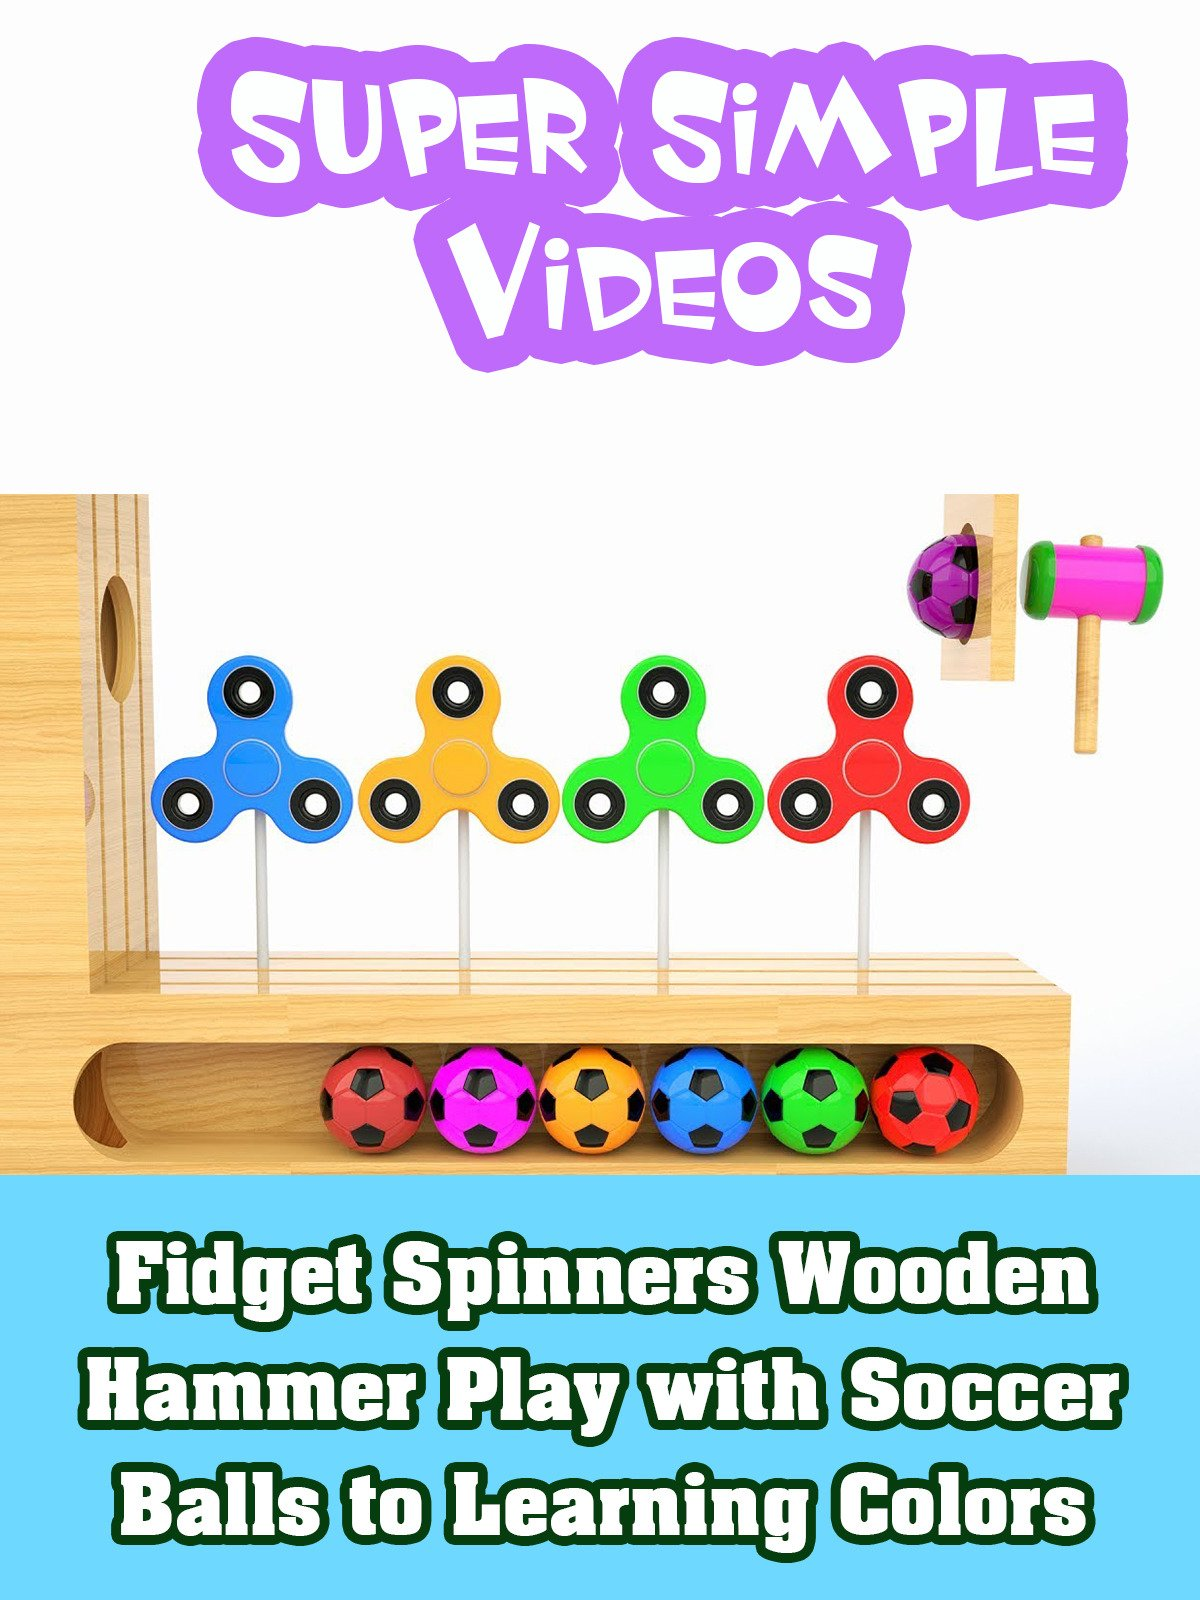 Fidget Spinners Wooden Hammer Play with Soccer Balls to Learning Colors